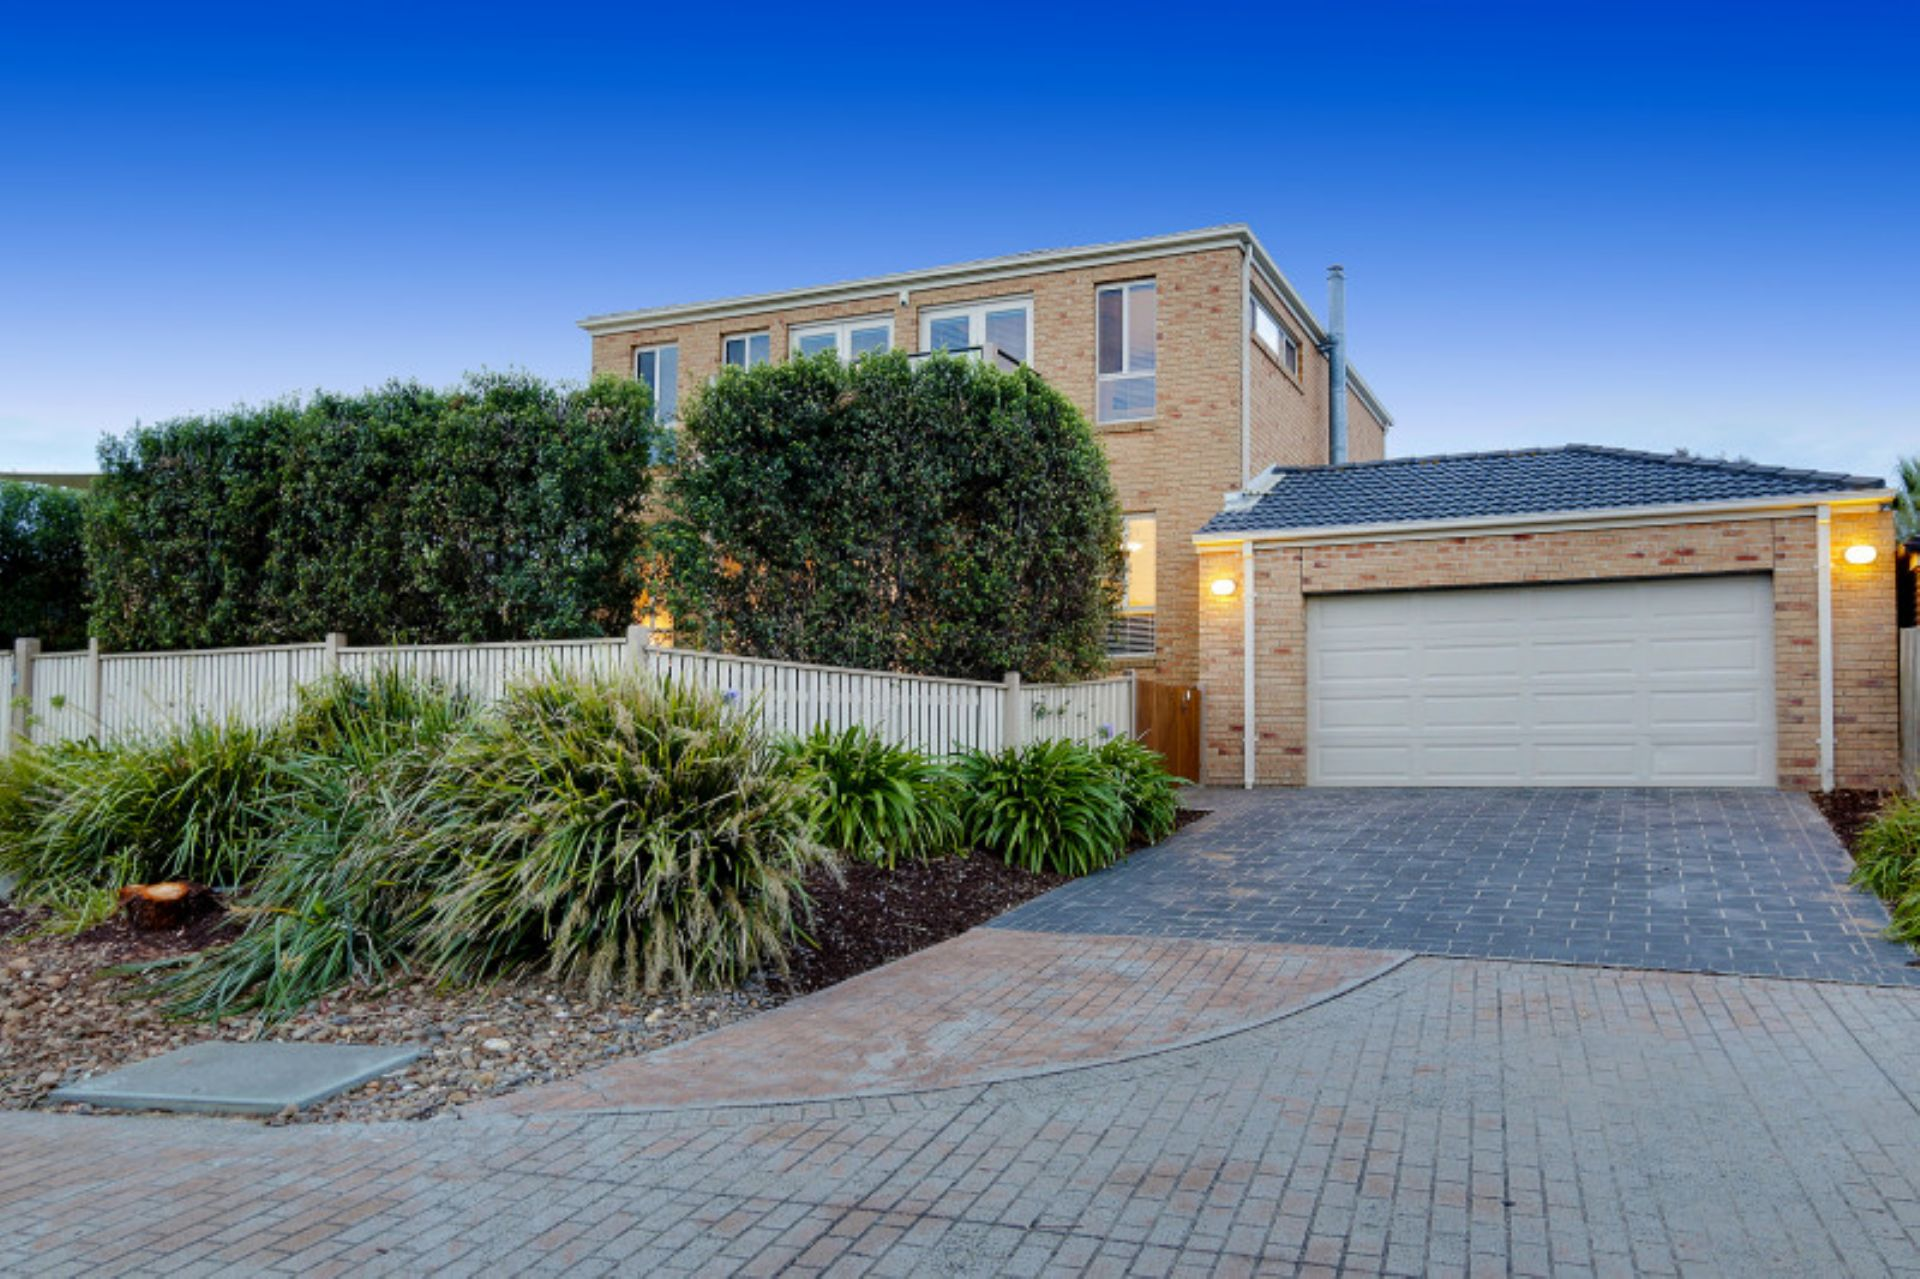 19 Tintagel Way, MORNINGTON, VIC, 3931 - Image